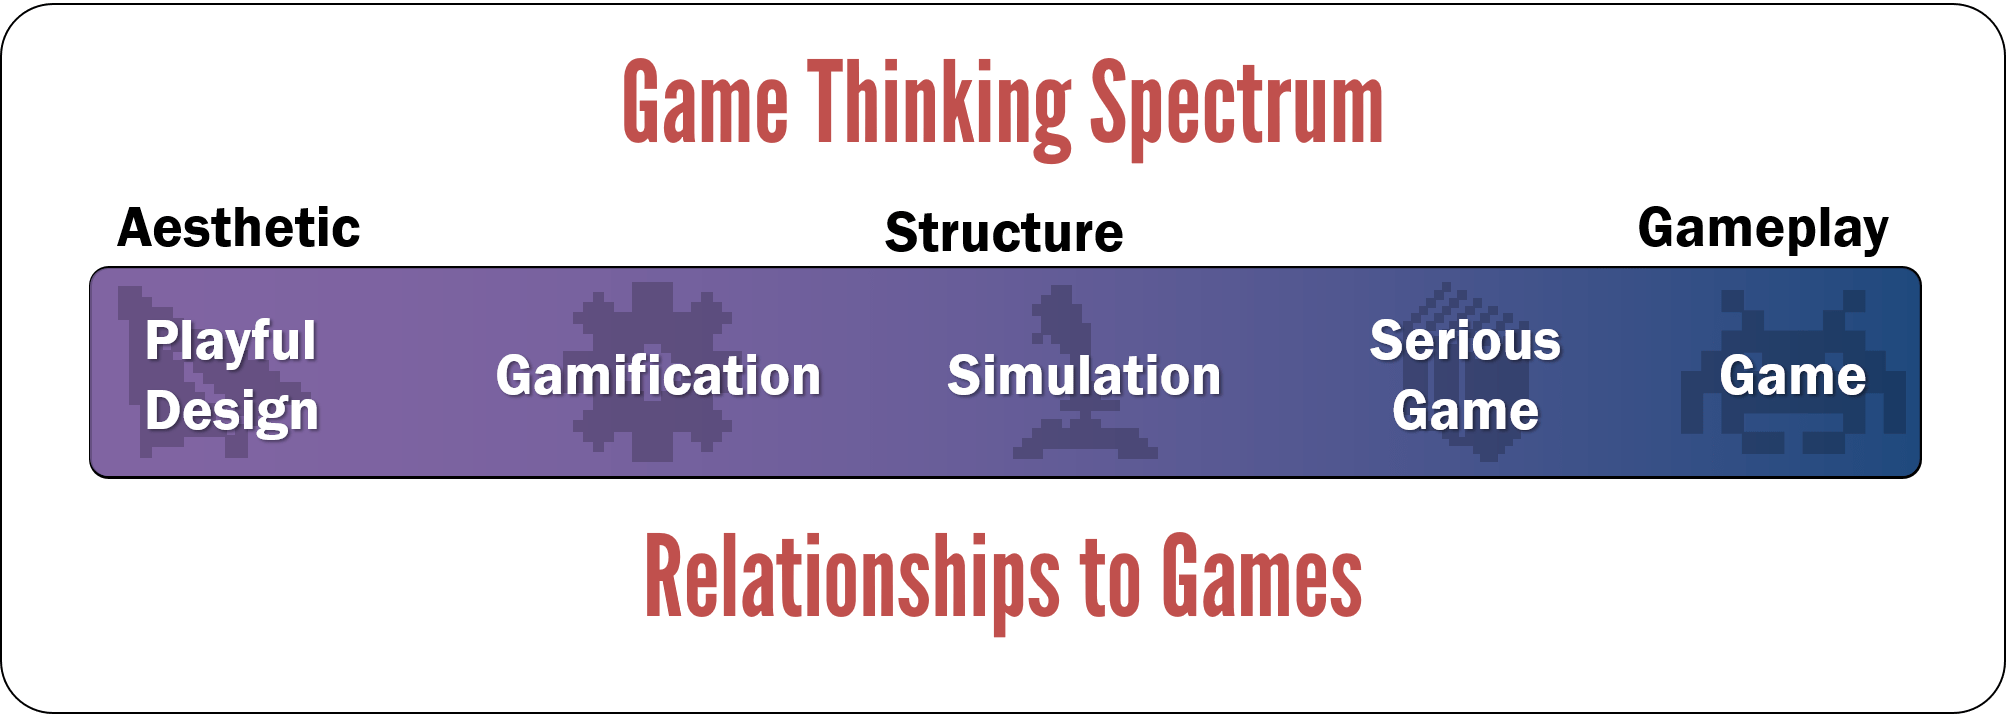 Game Thinking Spectrum 2 The Game Thinking Spectrum